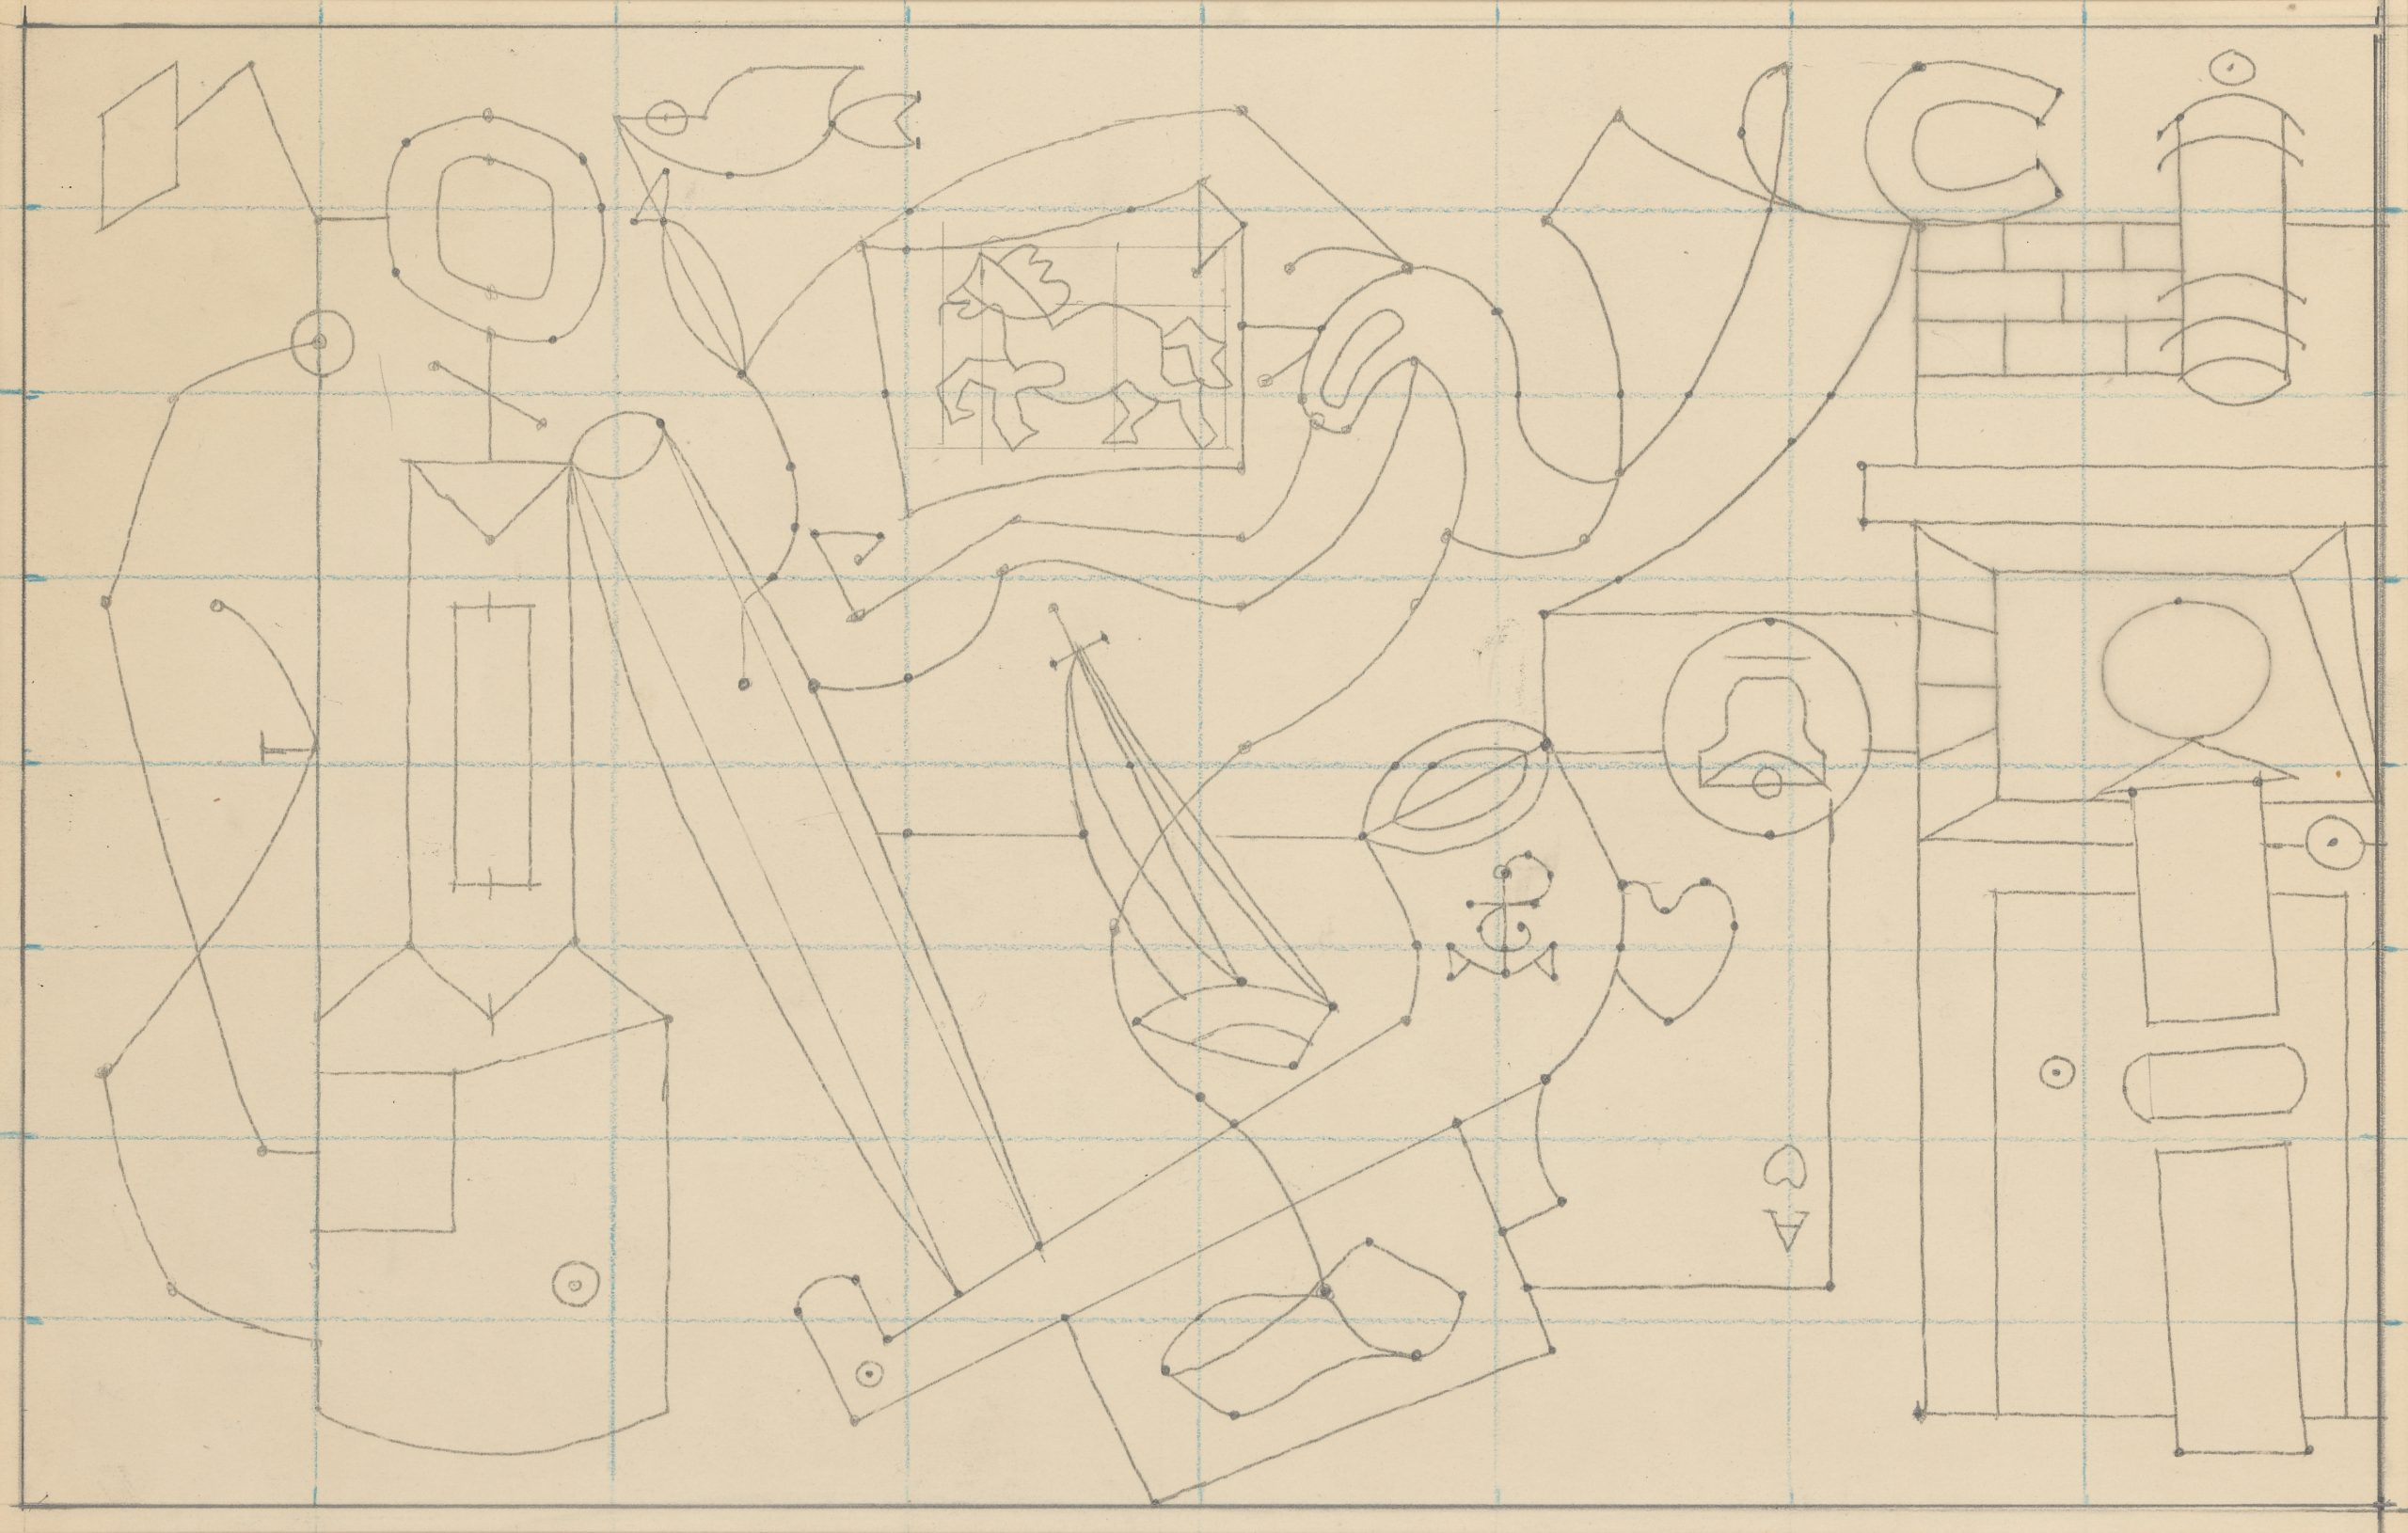 A drawing on graph paper featuring imagery including a gas pump, pipe, sailboat, barber shop pole, and playing card.